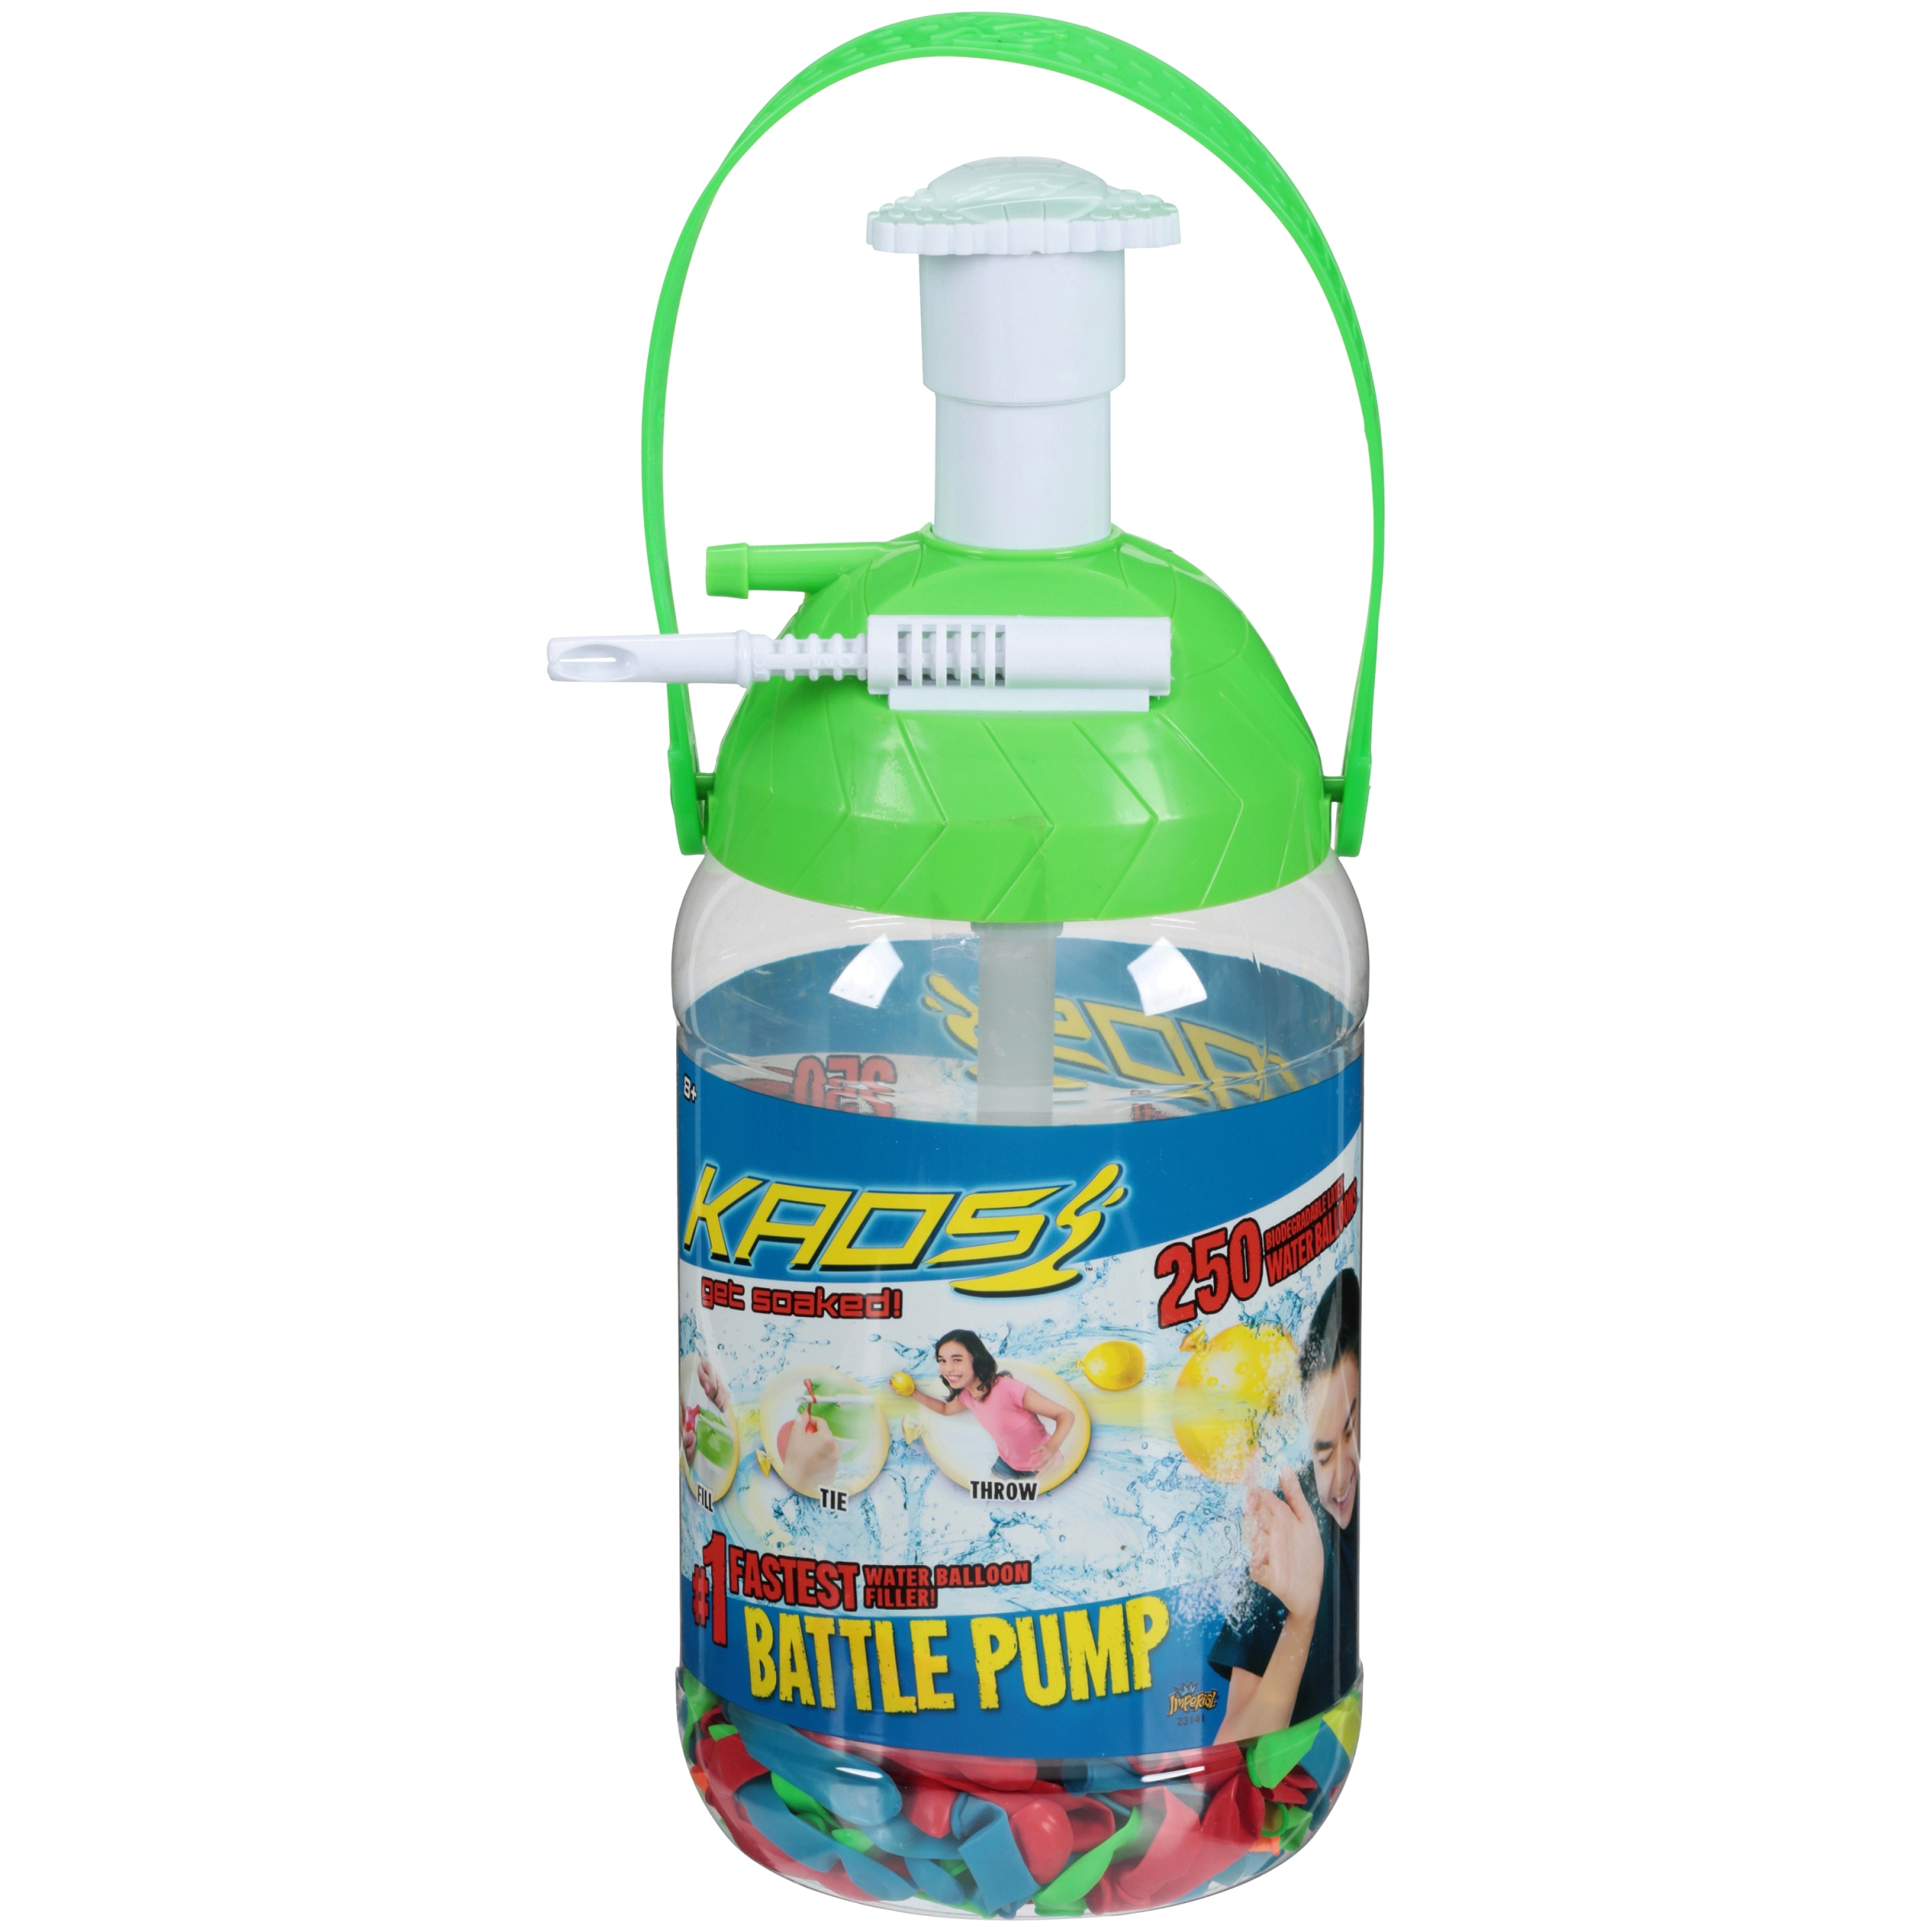 Imperial Toy KAOS Portable Pumping Station, Colors May Vary